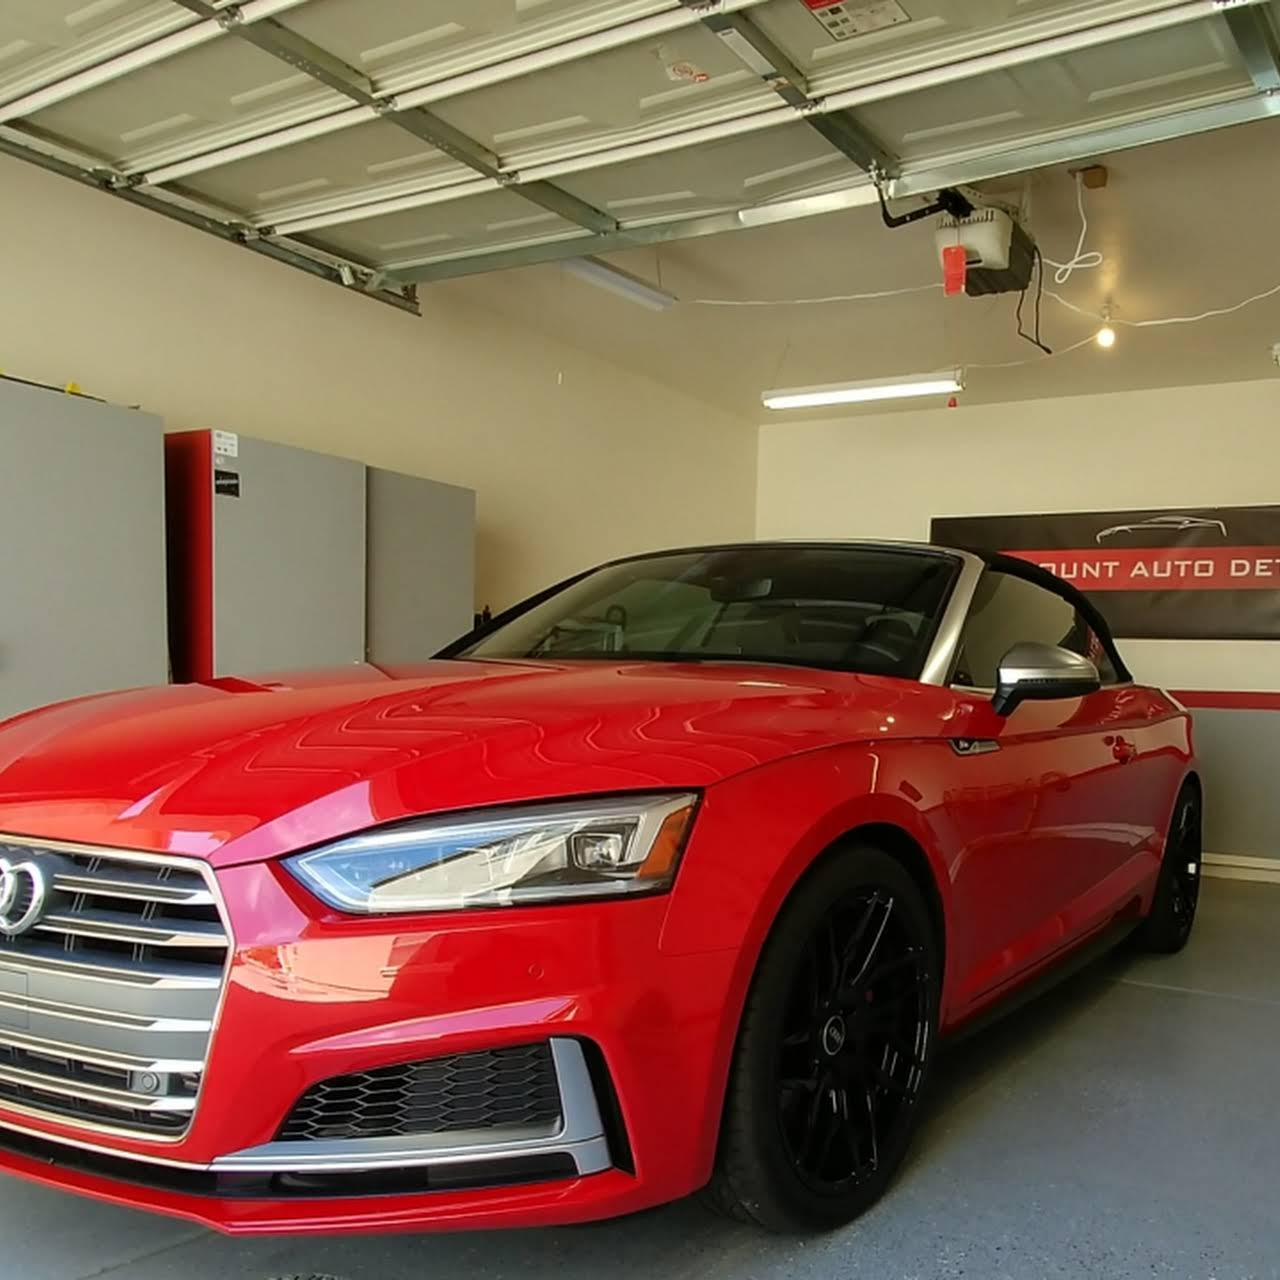 Paramount auto detailing car detailing service in queen creek a hand wash glaze and sea solutioingenieria Gallery